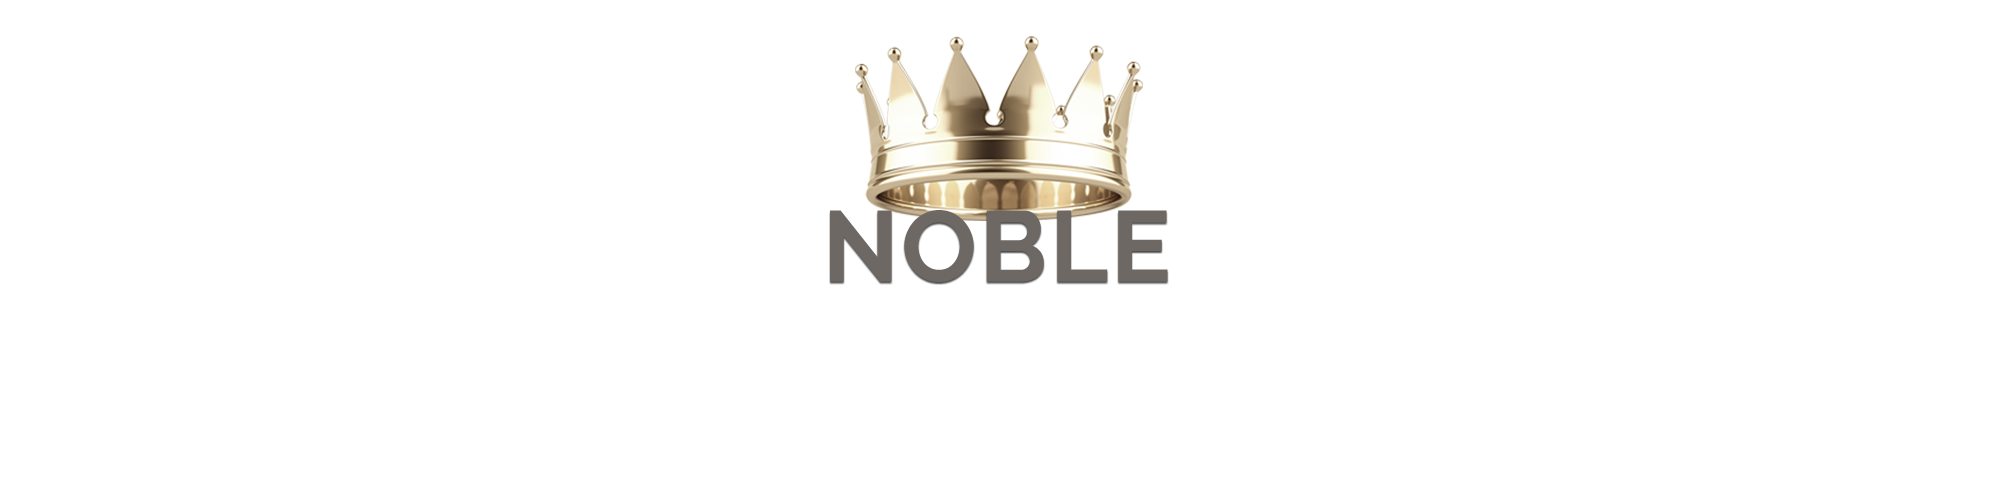 NOBLE